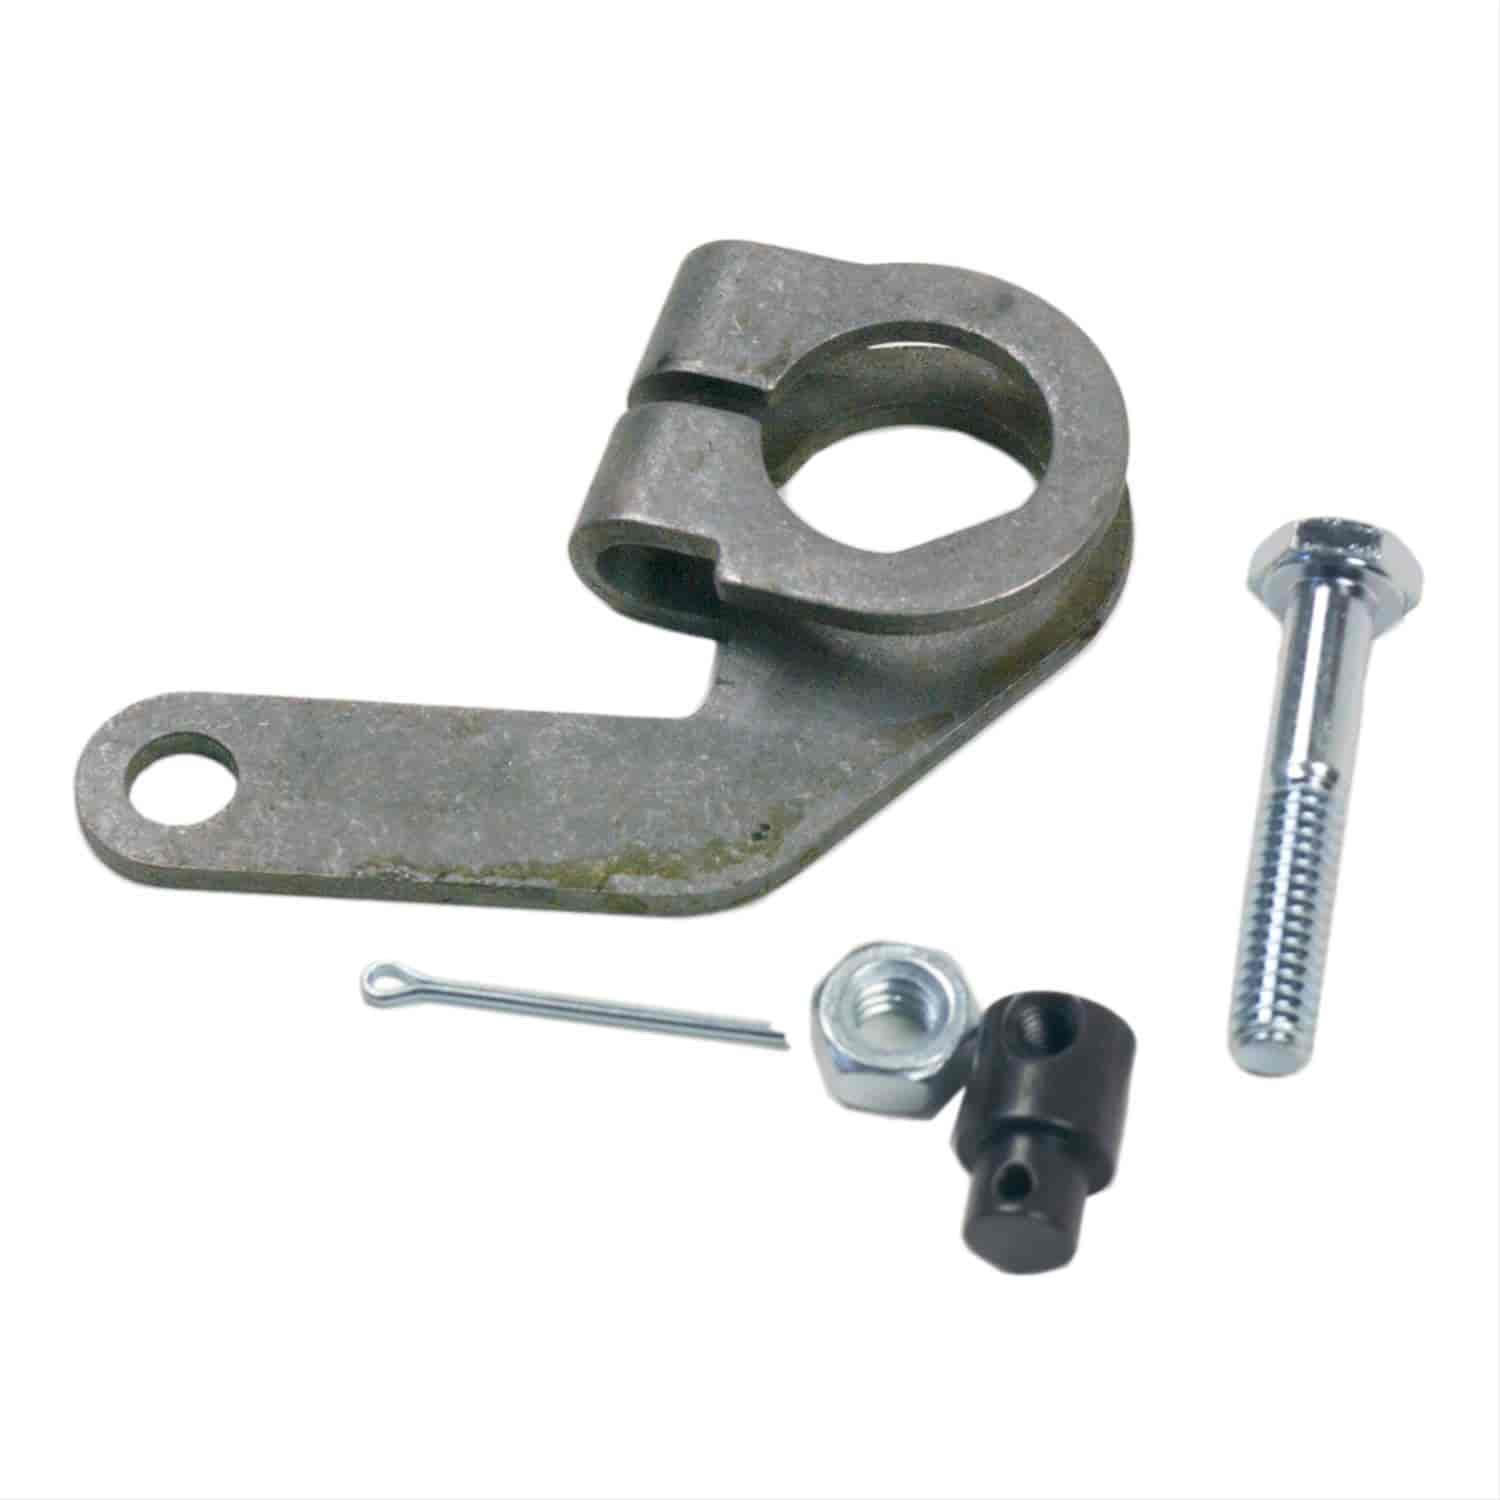 B&M 10462 - B&M Automatic Shifter Brackets and Levers